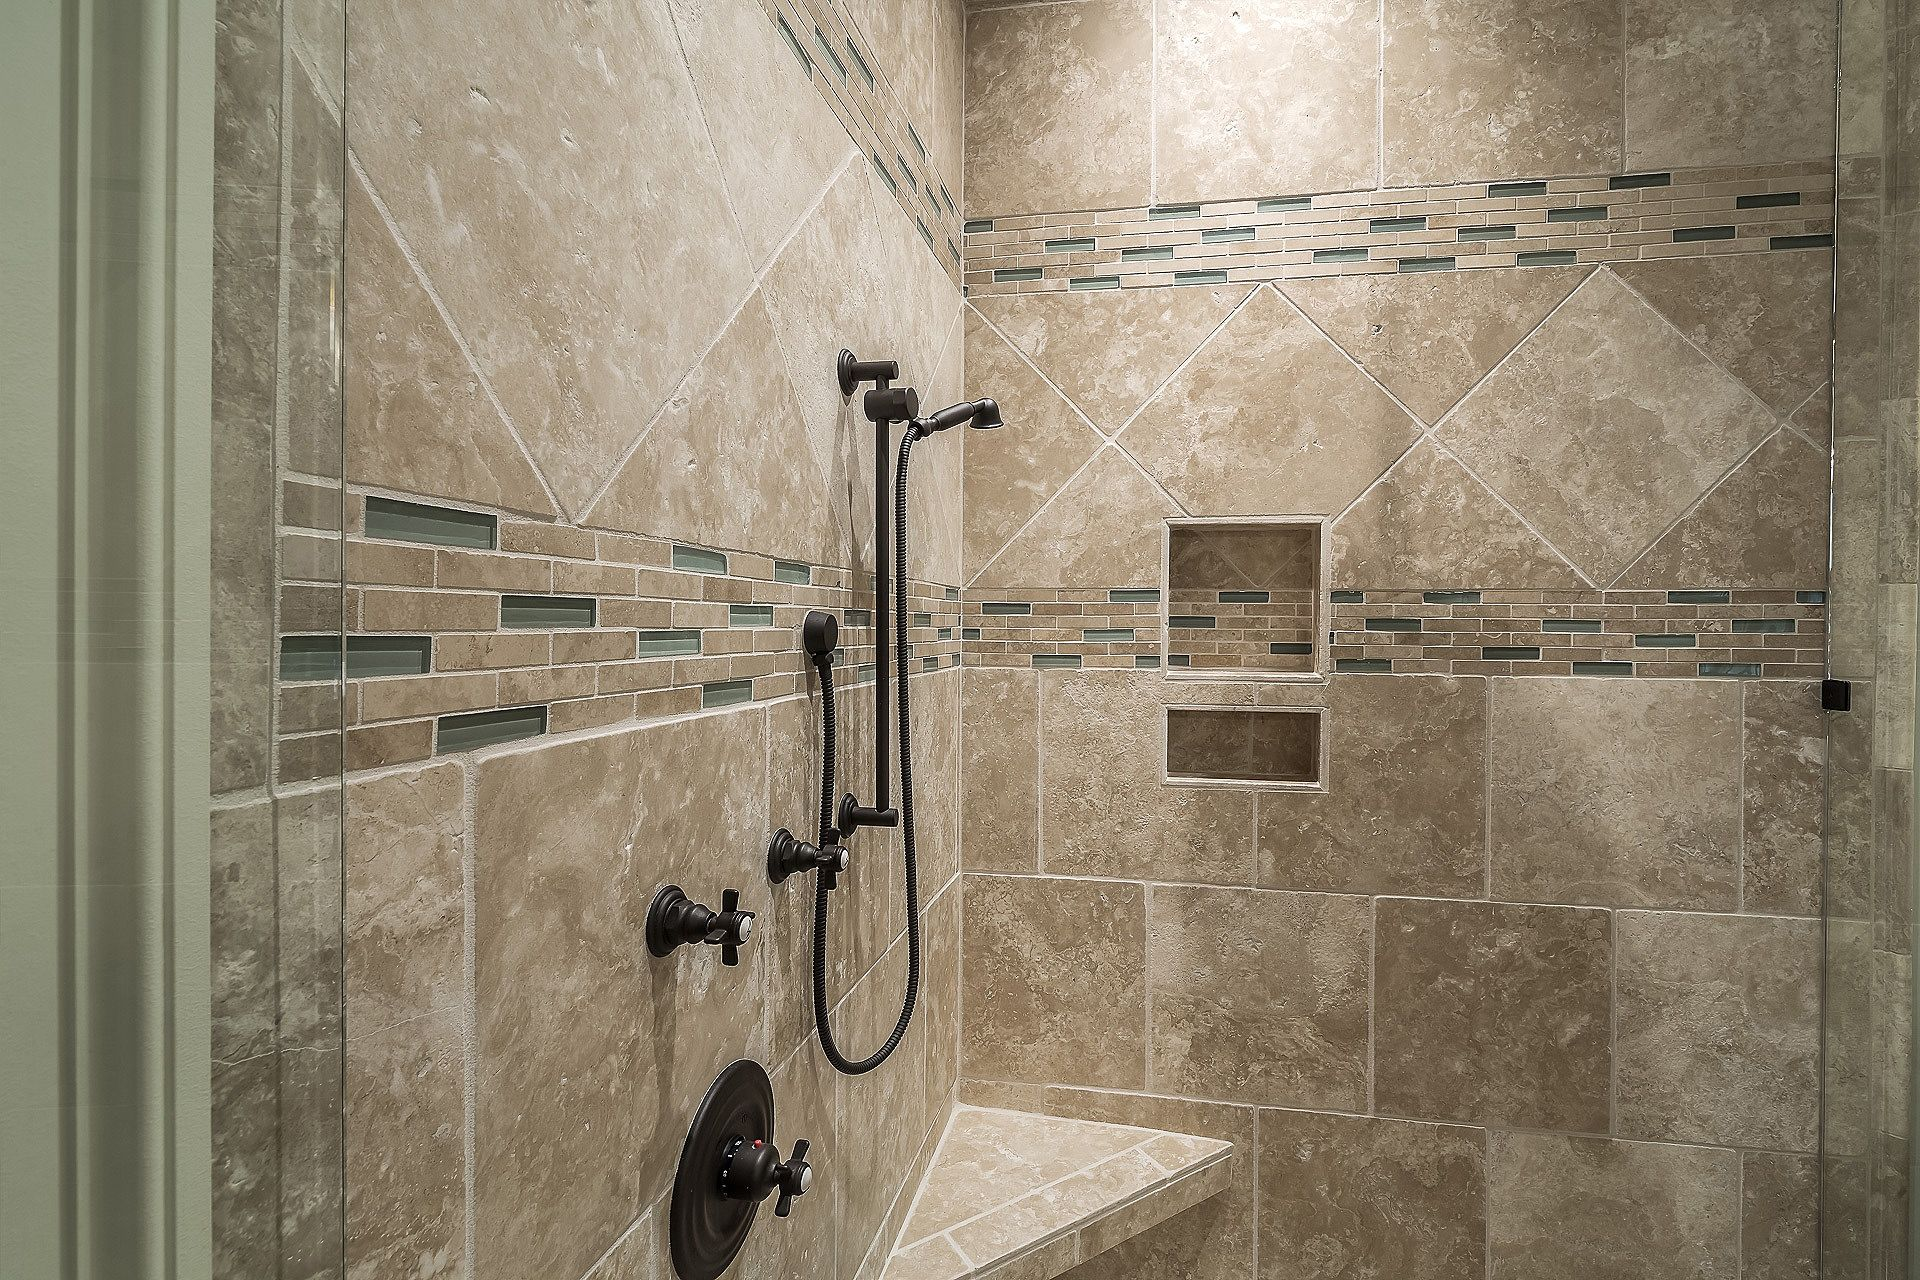 Grout Sealer - Basics and Application Guide